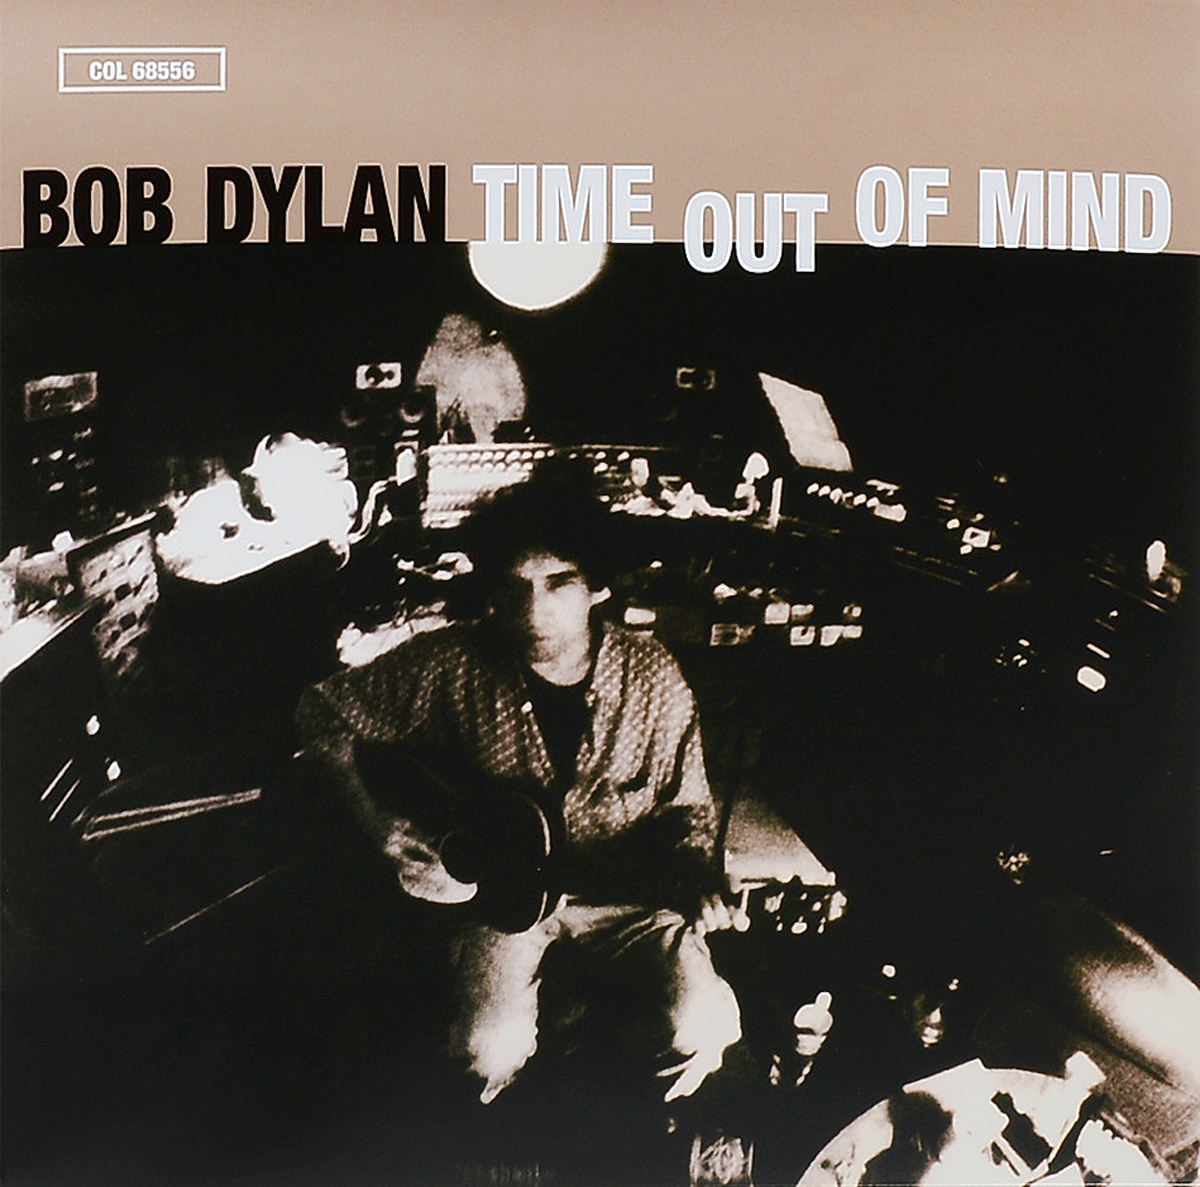 Боб Дилан Bob Dylan. Time Out Of Mind (2 LP) bob dylan bob dylan time out of mind 20th anniversary 2 lp 180 gr 7